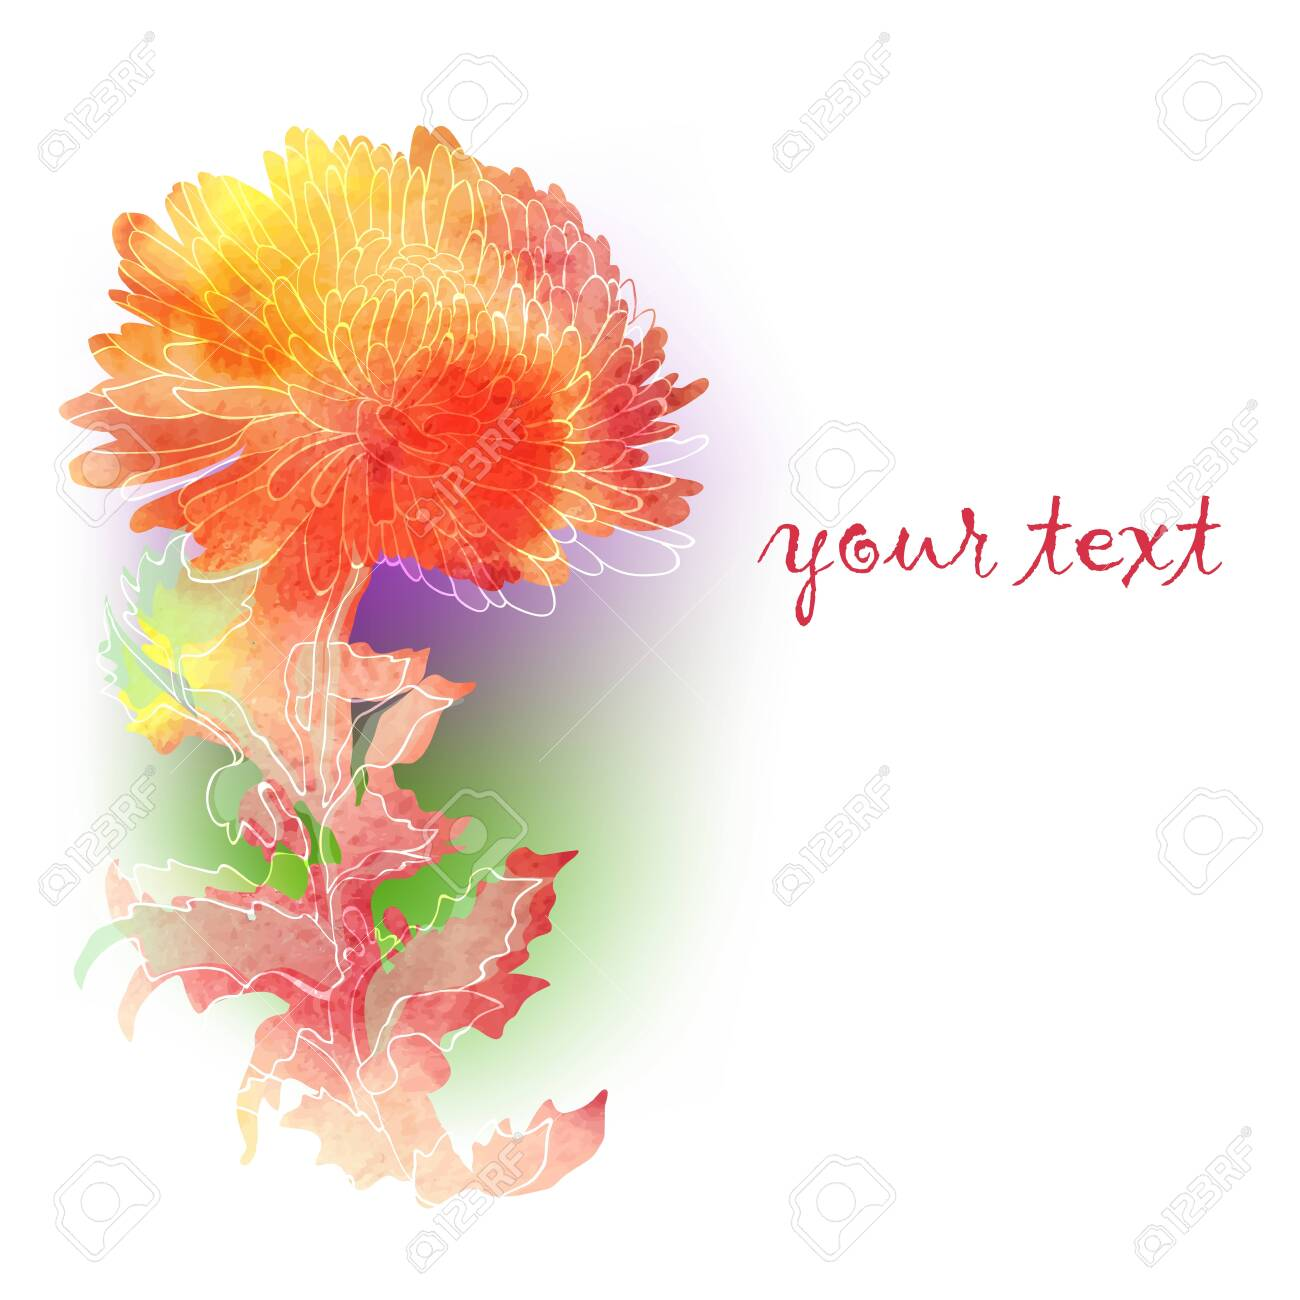 Watercolor background with colorful chrysanthemum. Vector illustration - 140222275